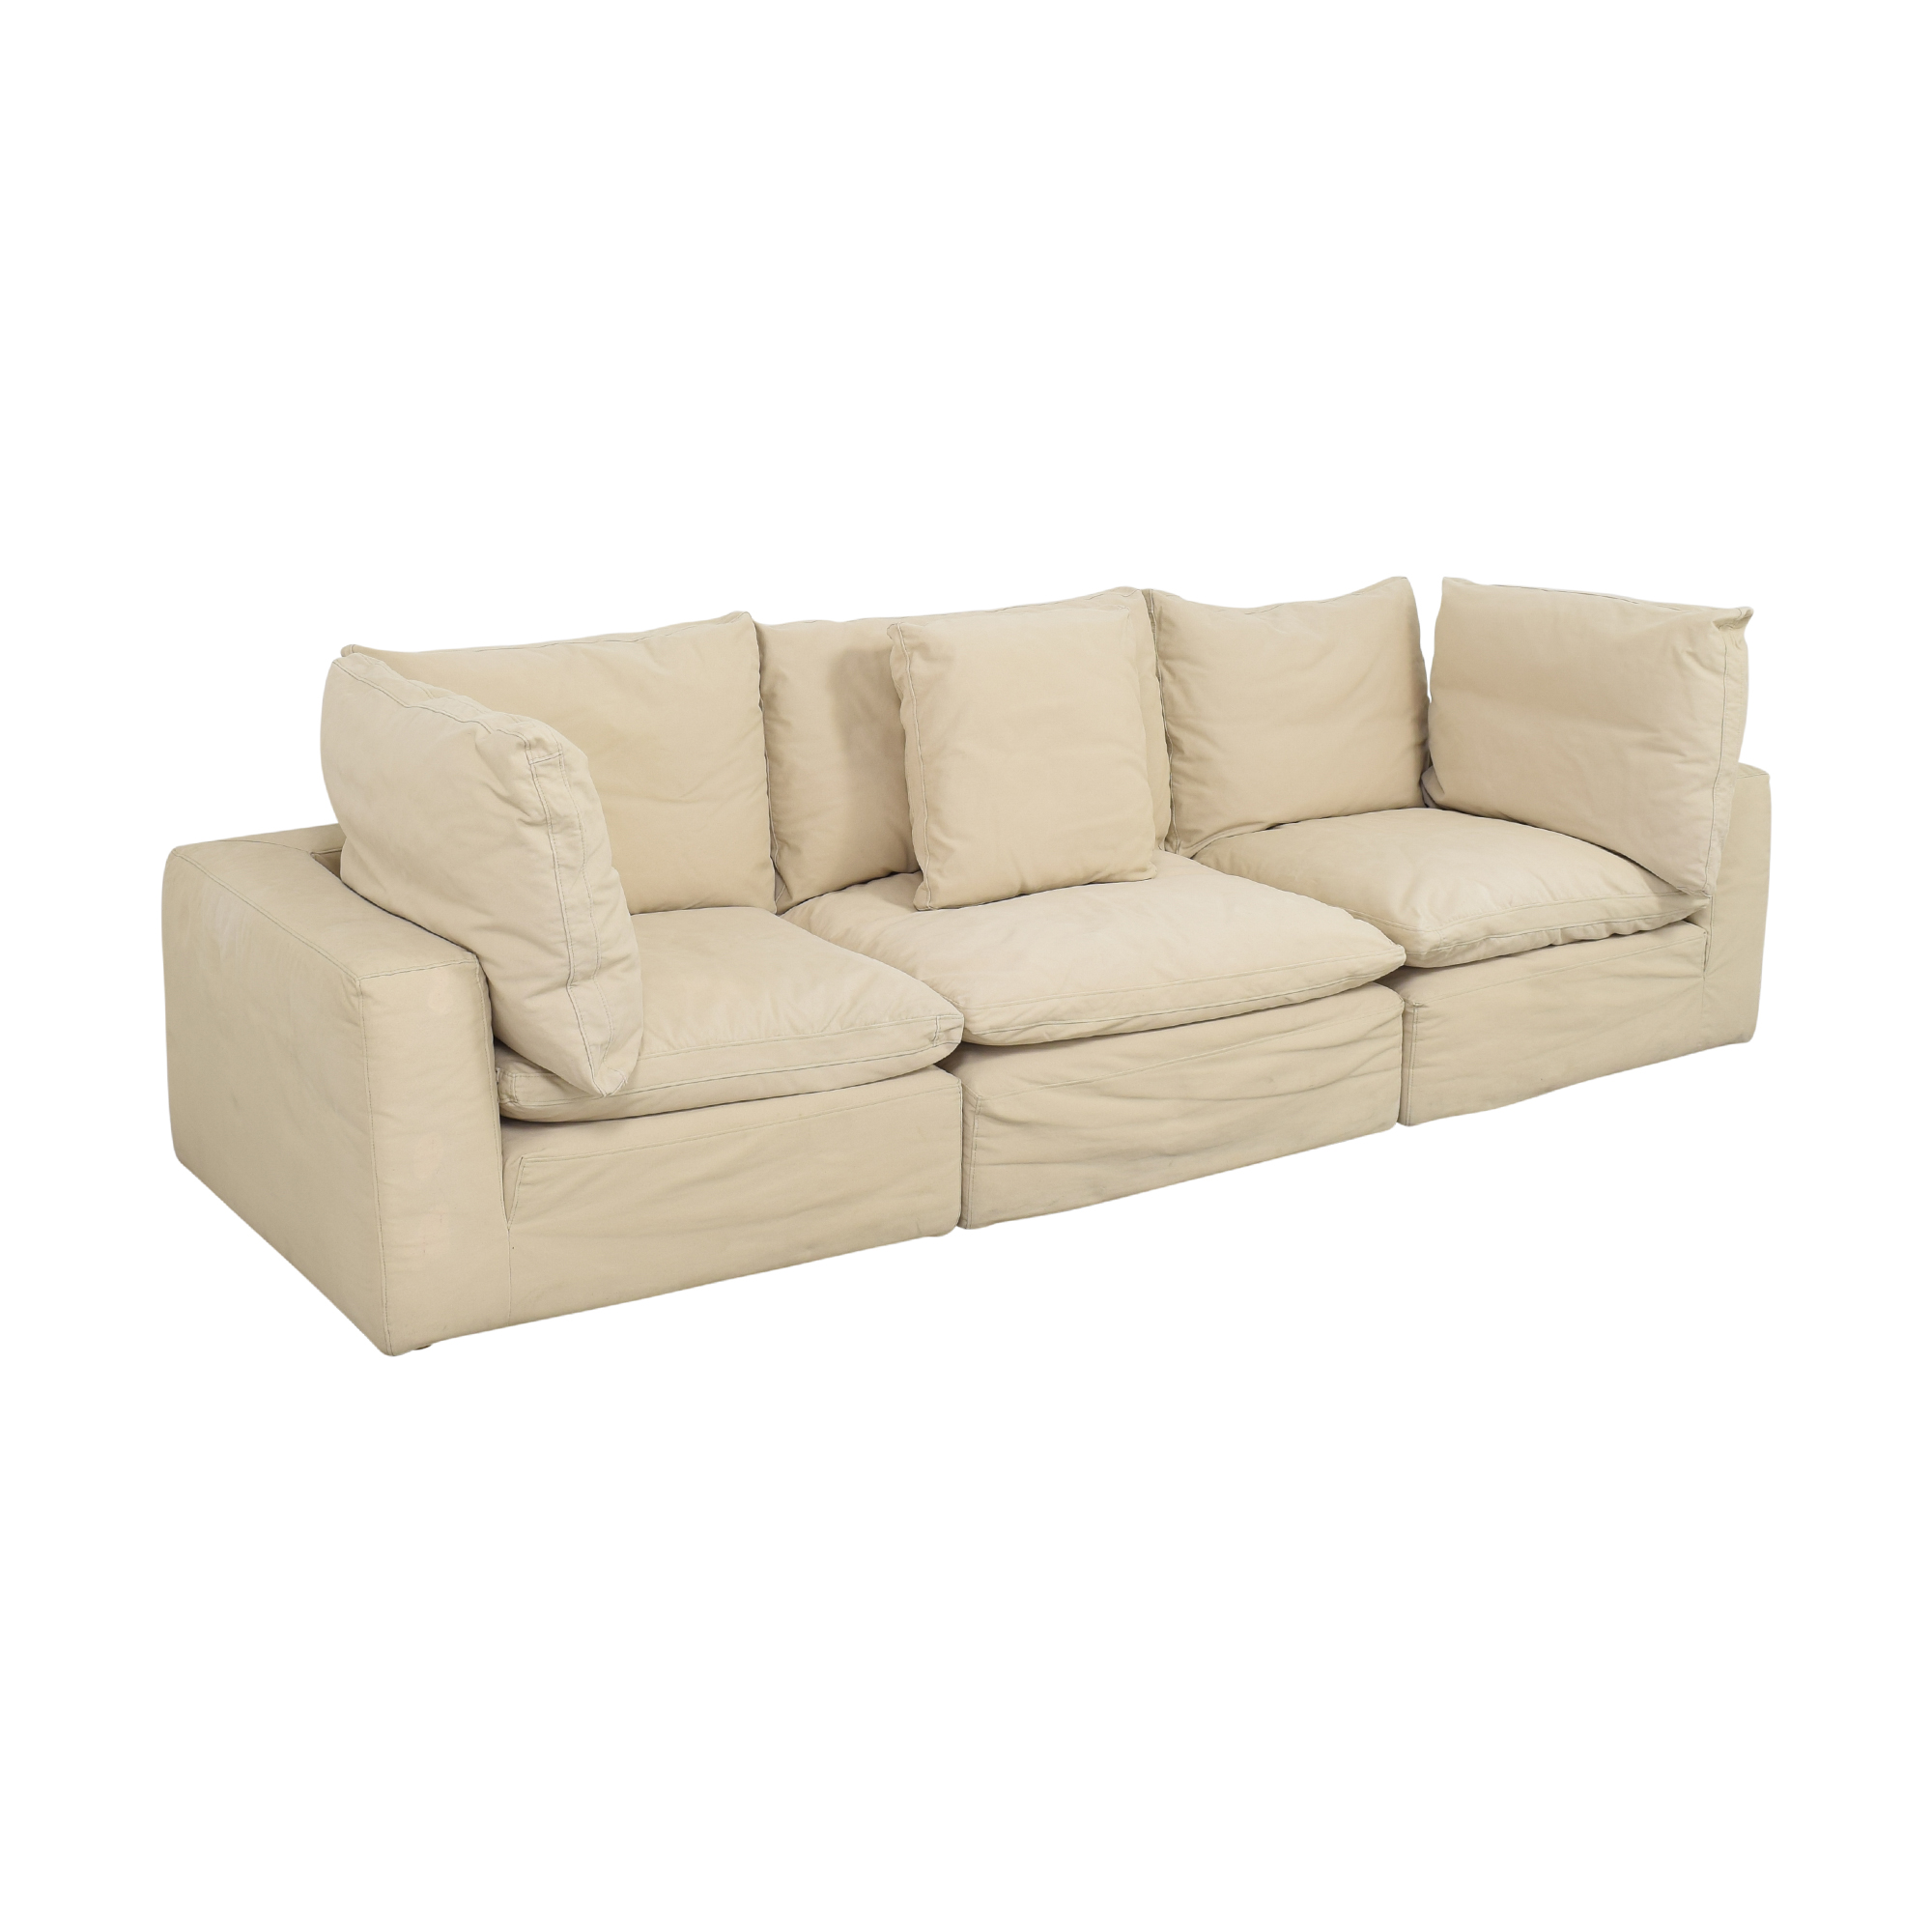 Restoration Hardware Cloud Modular Sofa sale